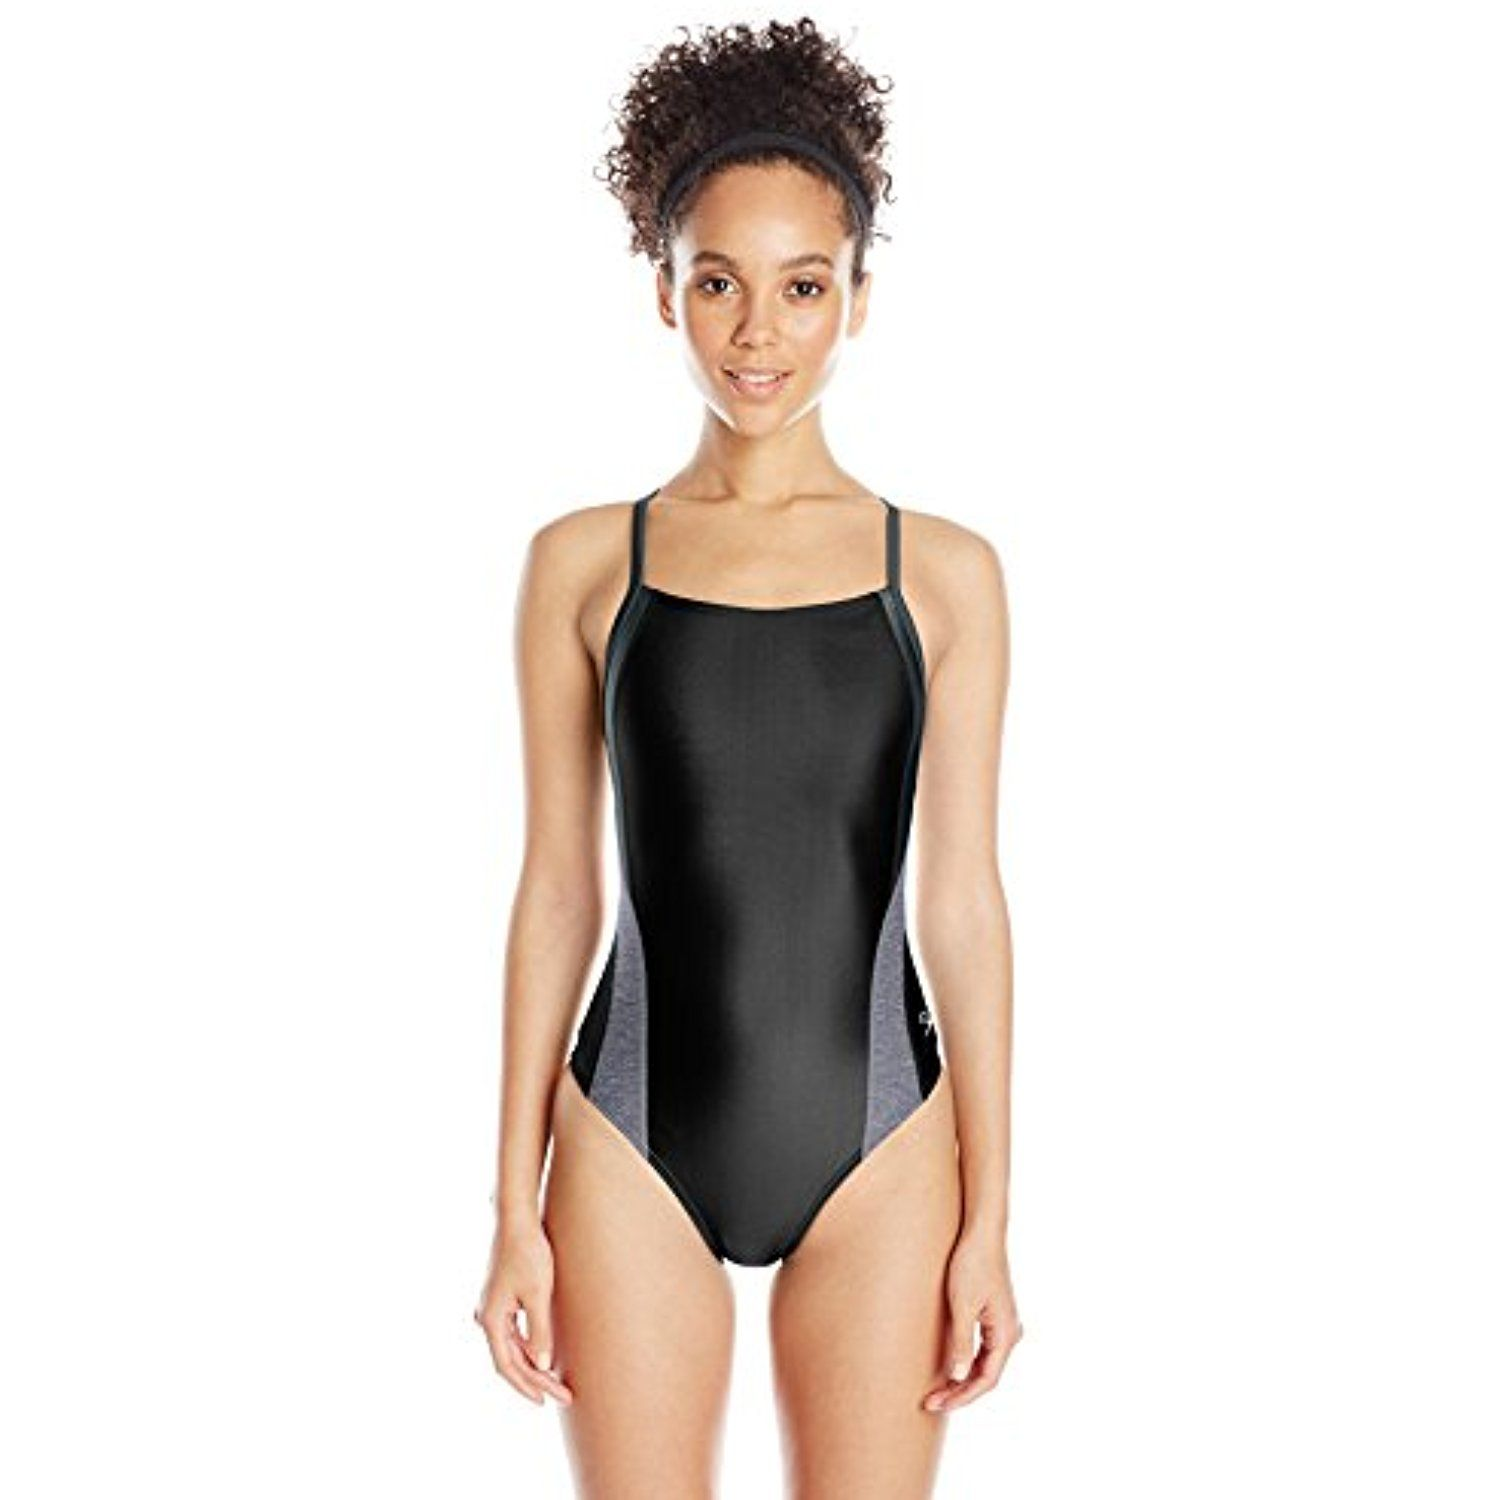 Speedo Women's Relaunch Flyback One Piece Swimsuit *** See this great product. (This is an affiliate link) #Swimwear